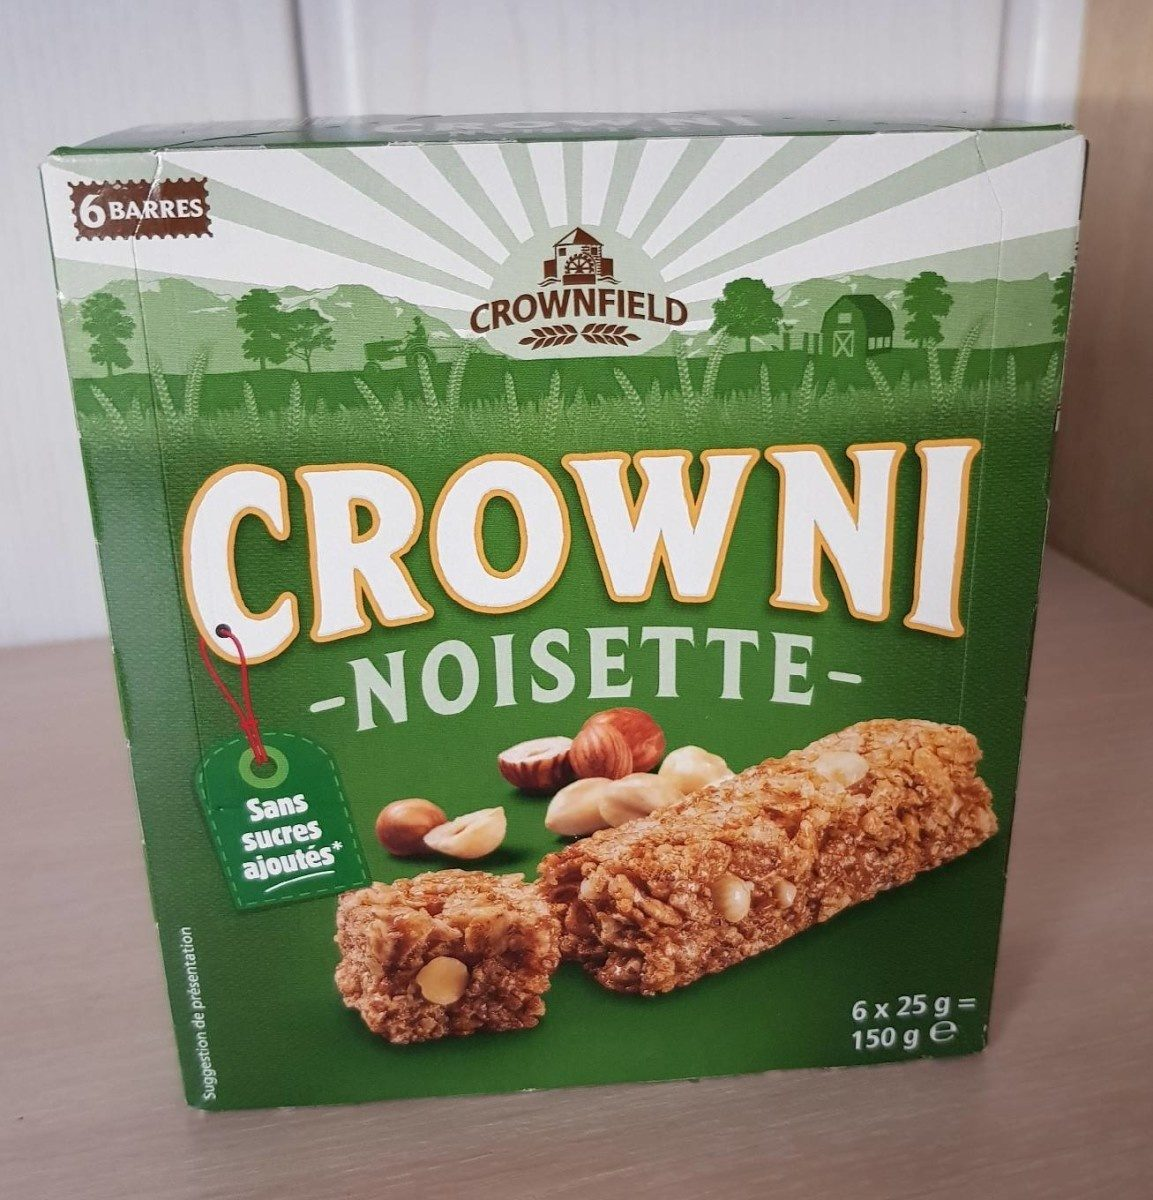 CROWNI -NOISETTE- - Producto